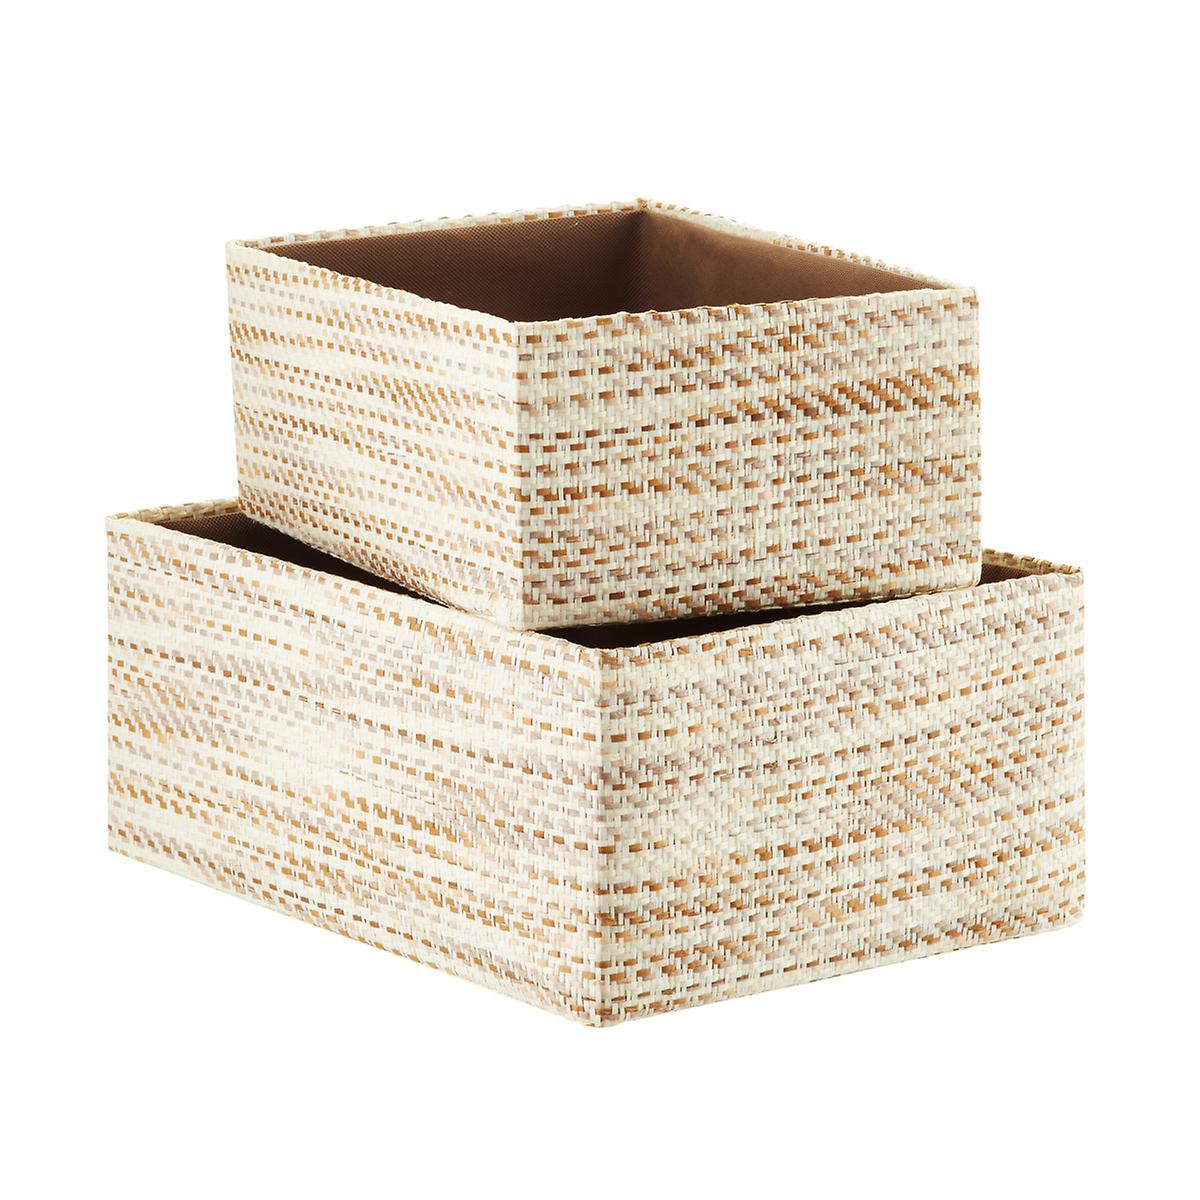 ivory  brown woven kiva storage bins. baskets wicker baskets decorative baskets  storage bins  the